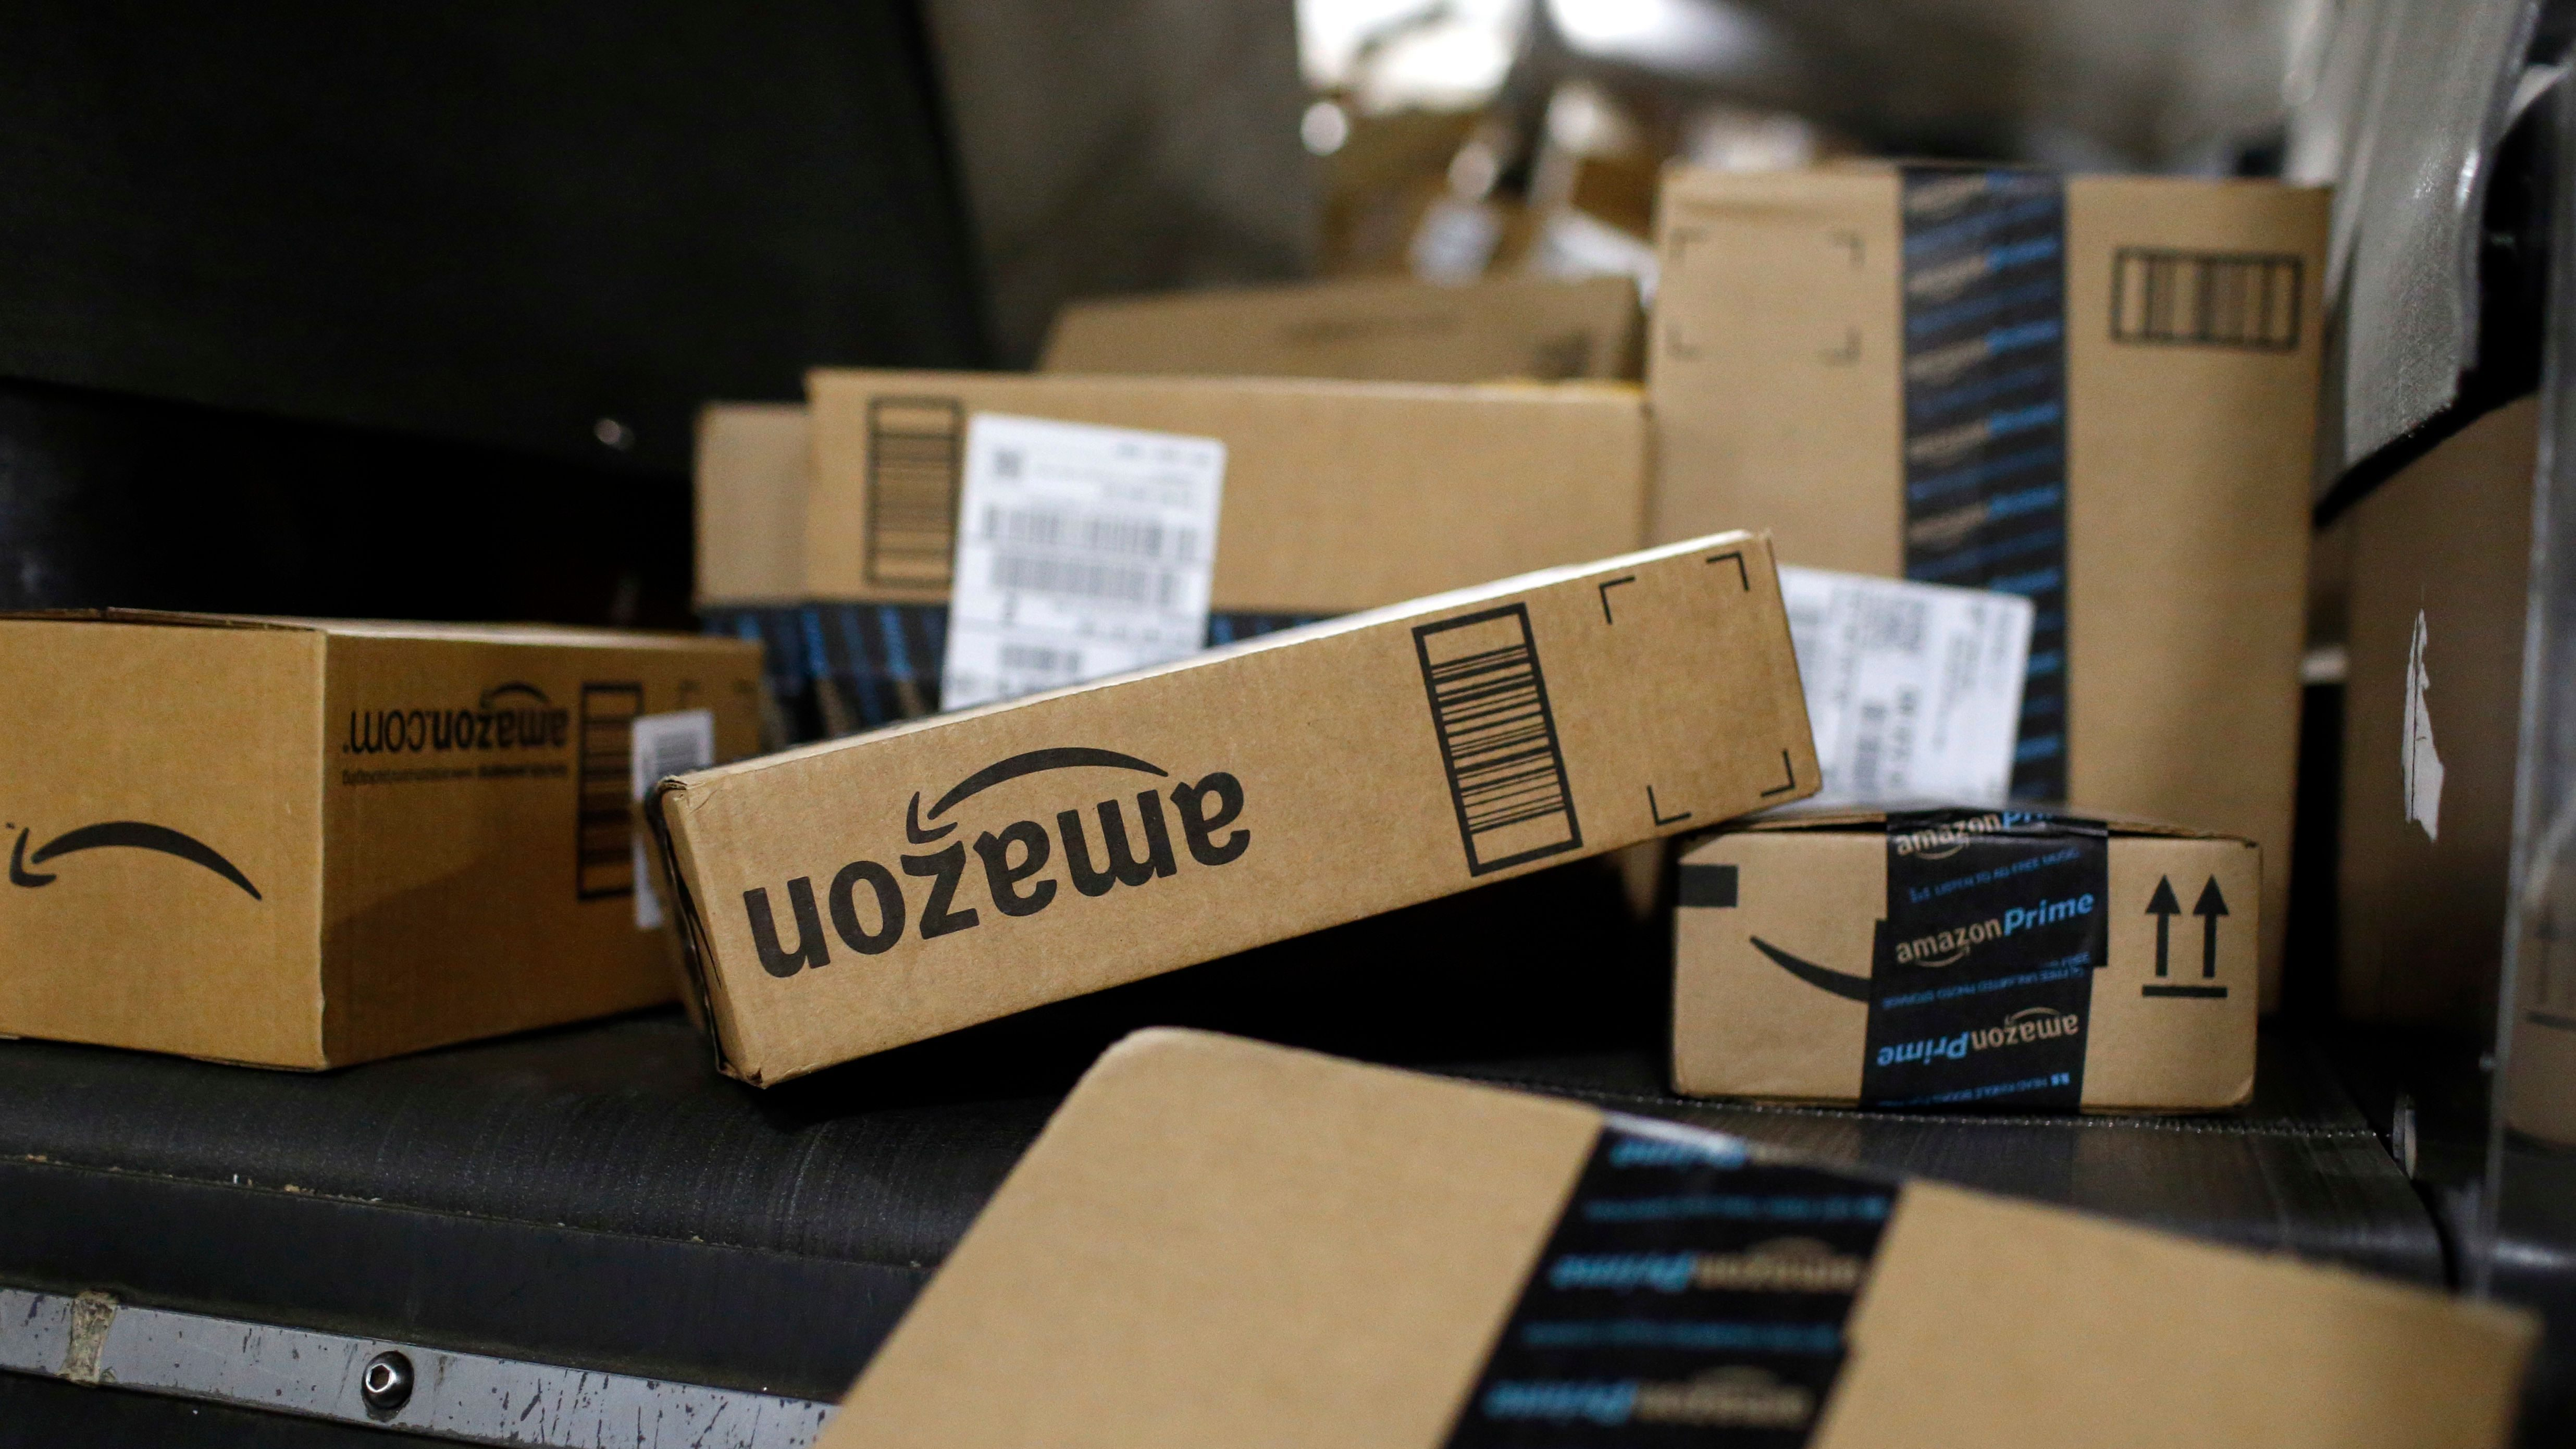 In this Nov. 20, 2015, photo, packages being shipped in Amazon boxes ride a conveyor belt at the UPS Worldport hub in Louisville, Ky. Amazon is already a huge part of many people's lives. And its $13.7 billion deal for the organic grocer Whole Foods will likely bind its customers even more tightly. While Amazon is the clear leader in e-commerce, 90 percent of worldwide retail spending is still in brick-and-mortar stores, according to eMarketer. (AP Photo/Patrick Semansky)